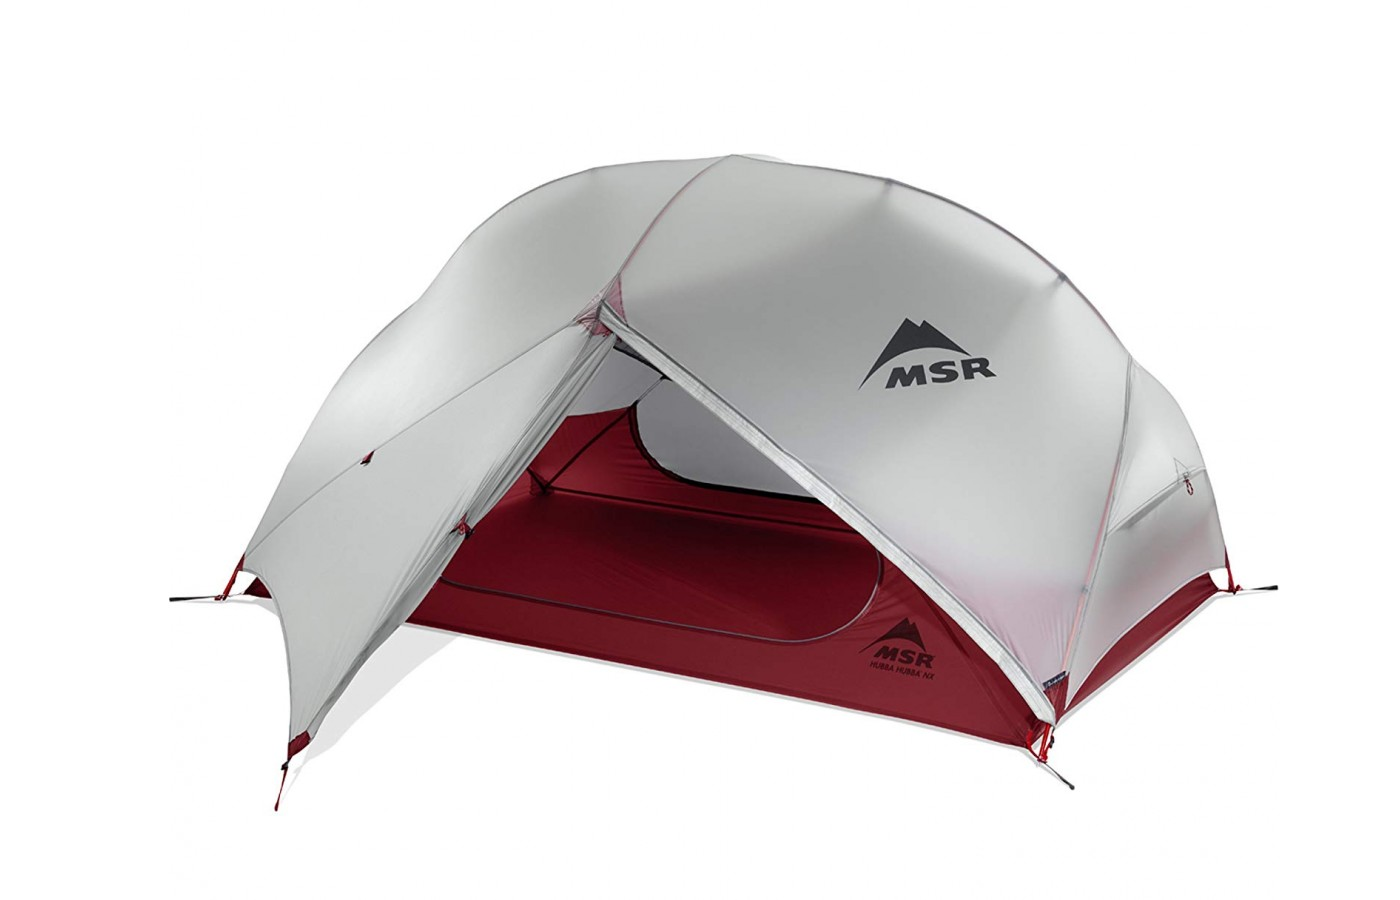 The tent is lightweight.